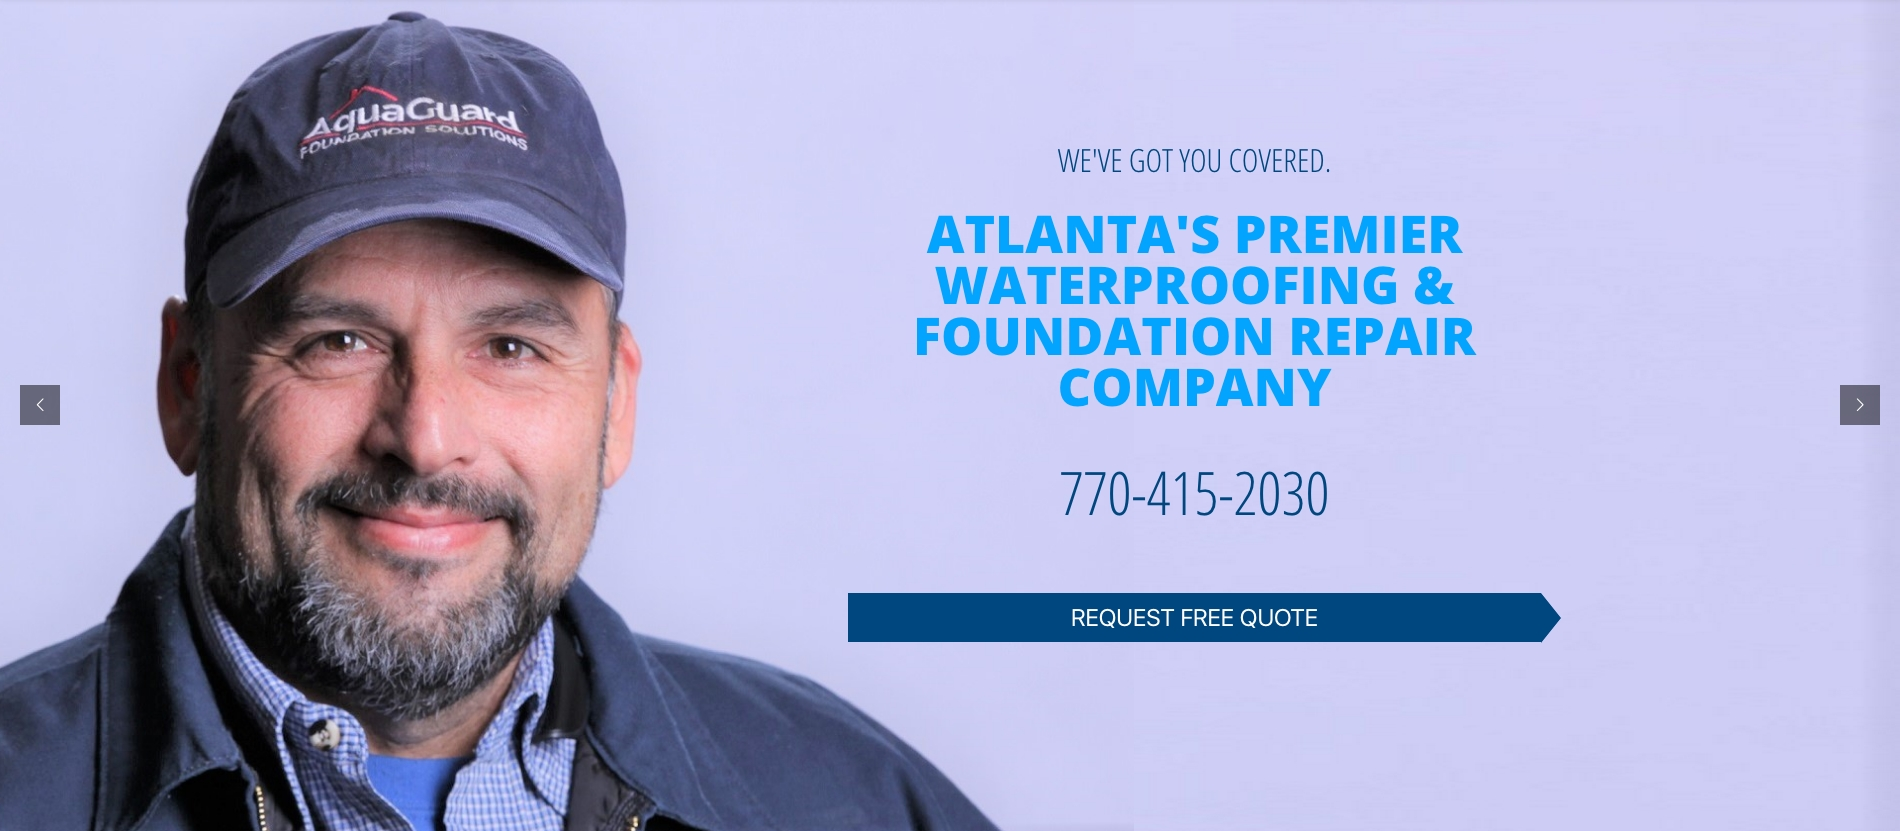 Aquaguard Basement Systems Marietta Ga